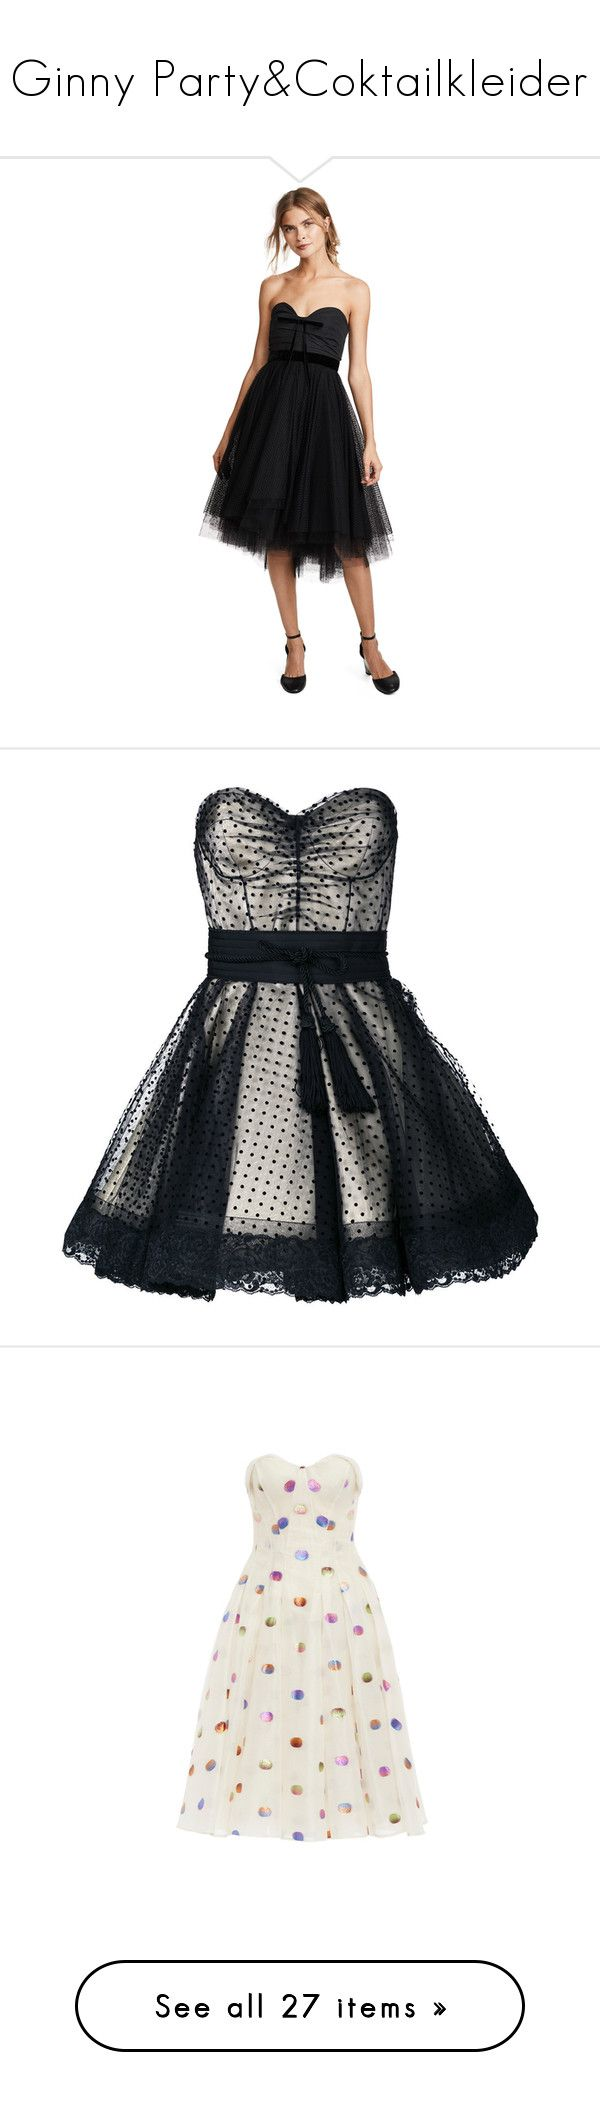 """""""Ginny Party&Coktailkleider"""" by kleinesbiest ❤ liked on Polyvore featuring dresses, black, strapless dress, layered dress, tulle cocktail dress, full skirts, strapless tulle dress, polka dot dress, sweetheart lace dress and lace cocktail dress"""